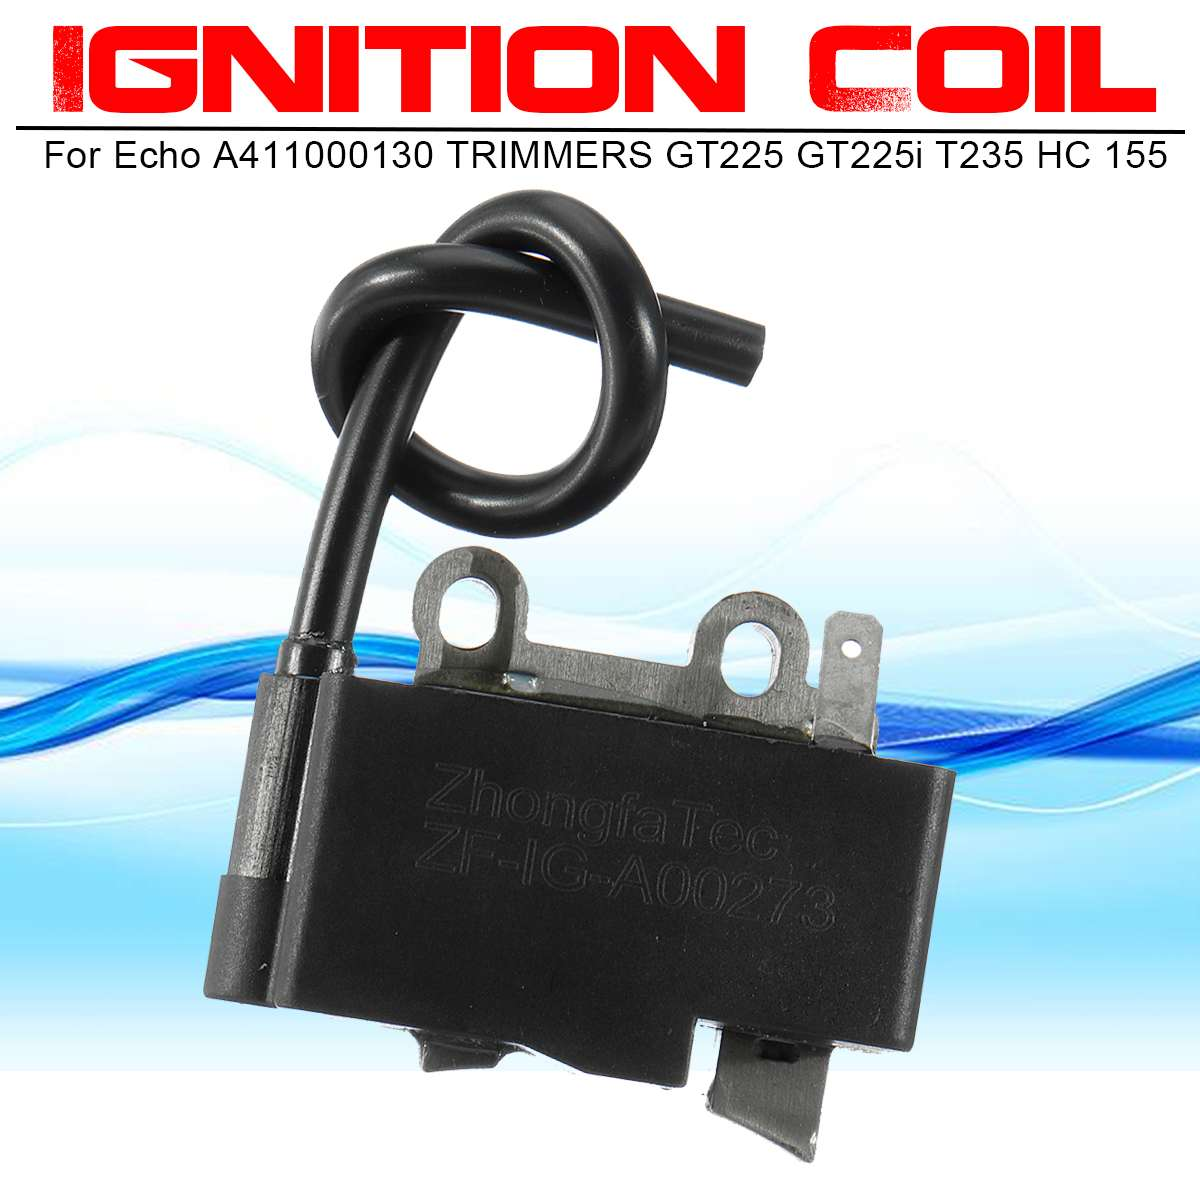 New 1 PCS Ignition Coil Replacement For Echo A411000130 TRIMMERS GT225 GT225i HC161 SRM225i SRM225SB GT